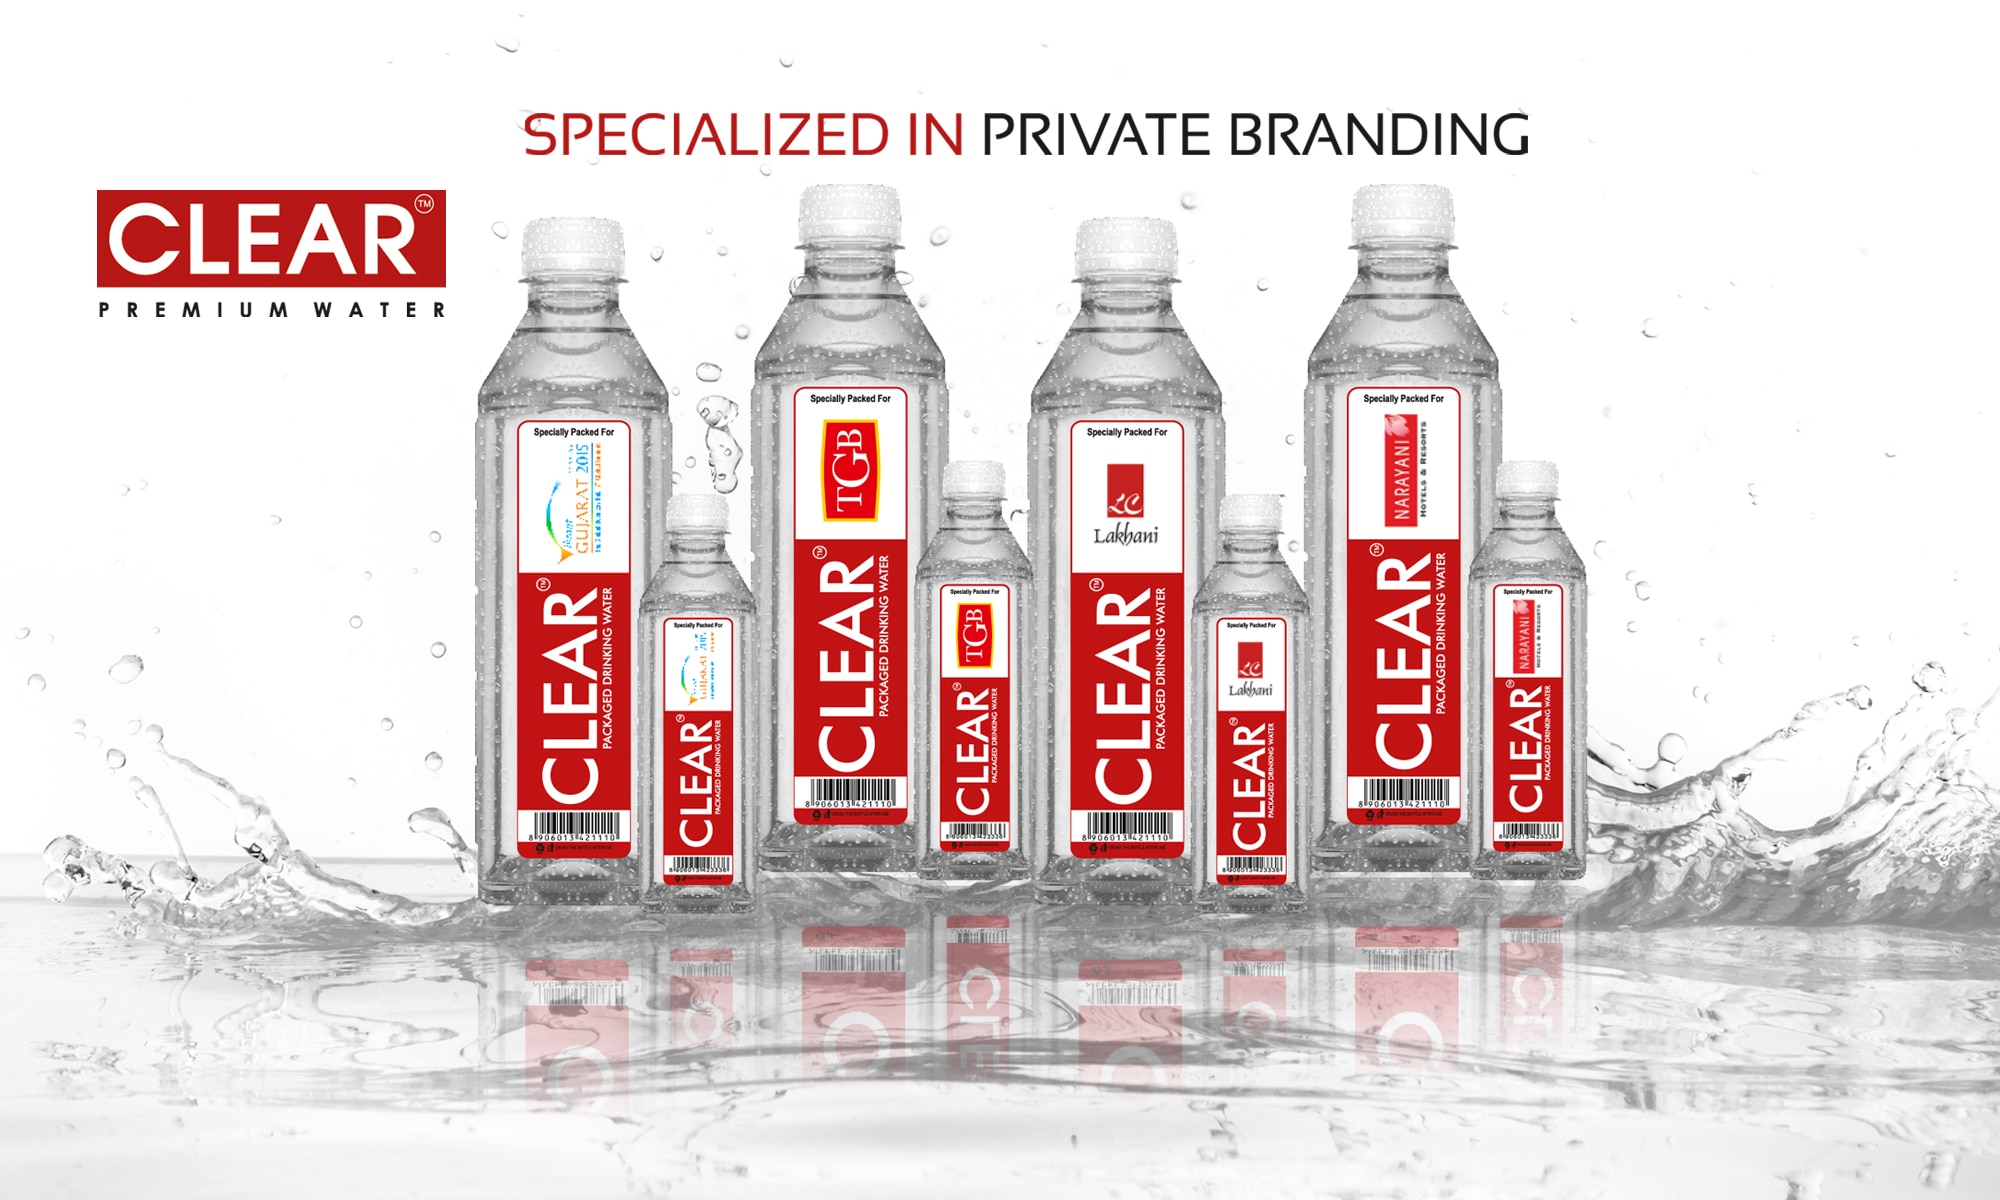 clear premium water specialized in private b energy beverages pvt